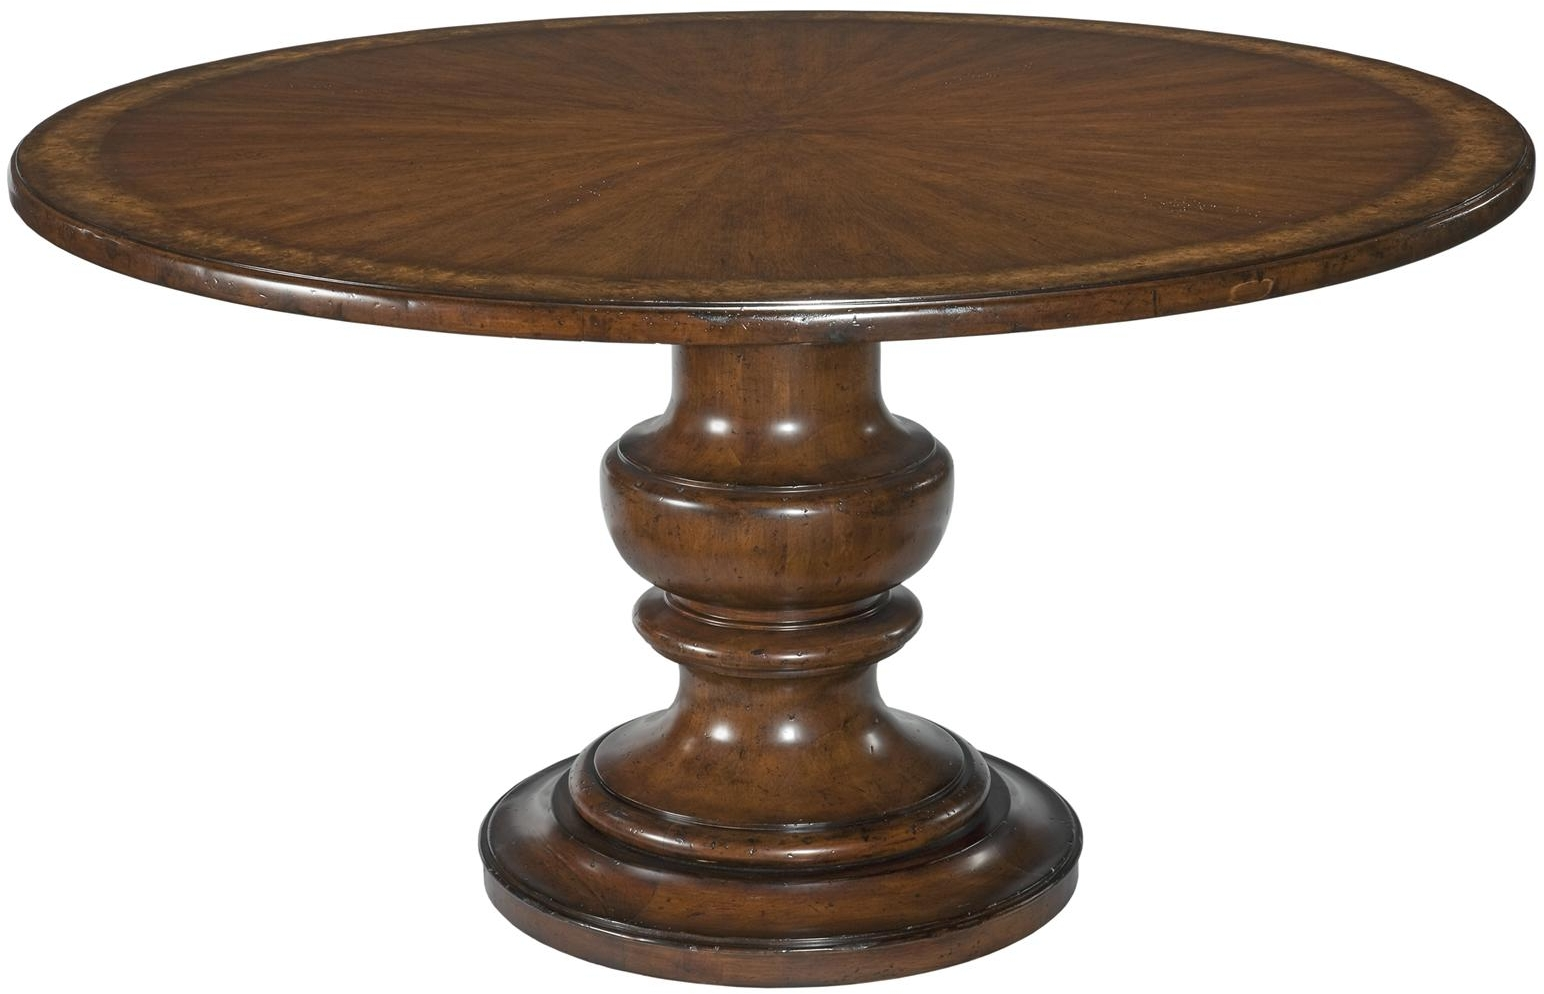 Dining table round pedestal dining table 72 inch for Circle table